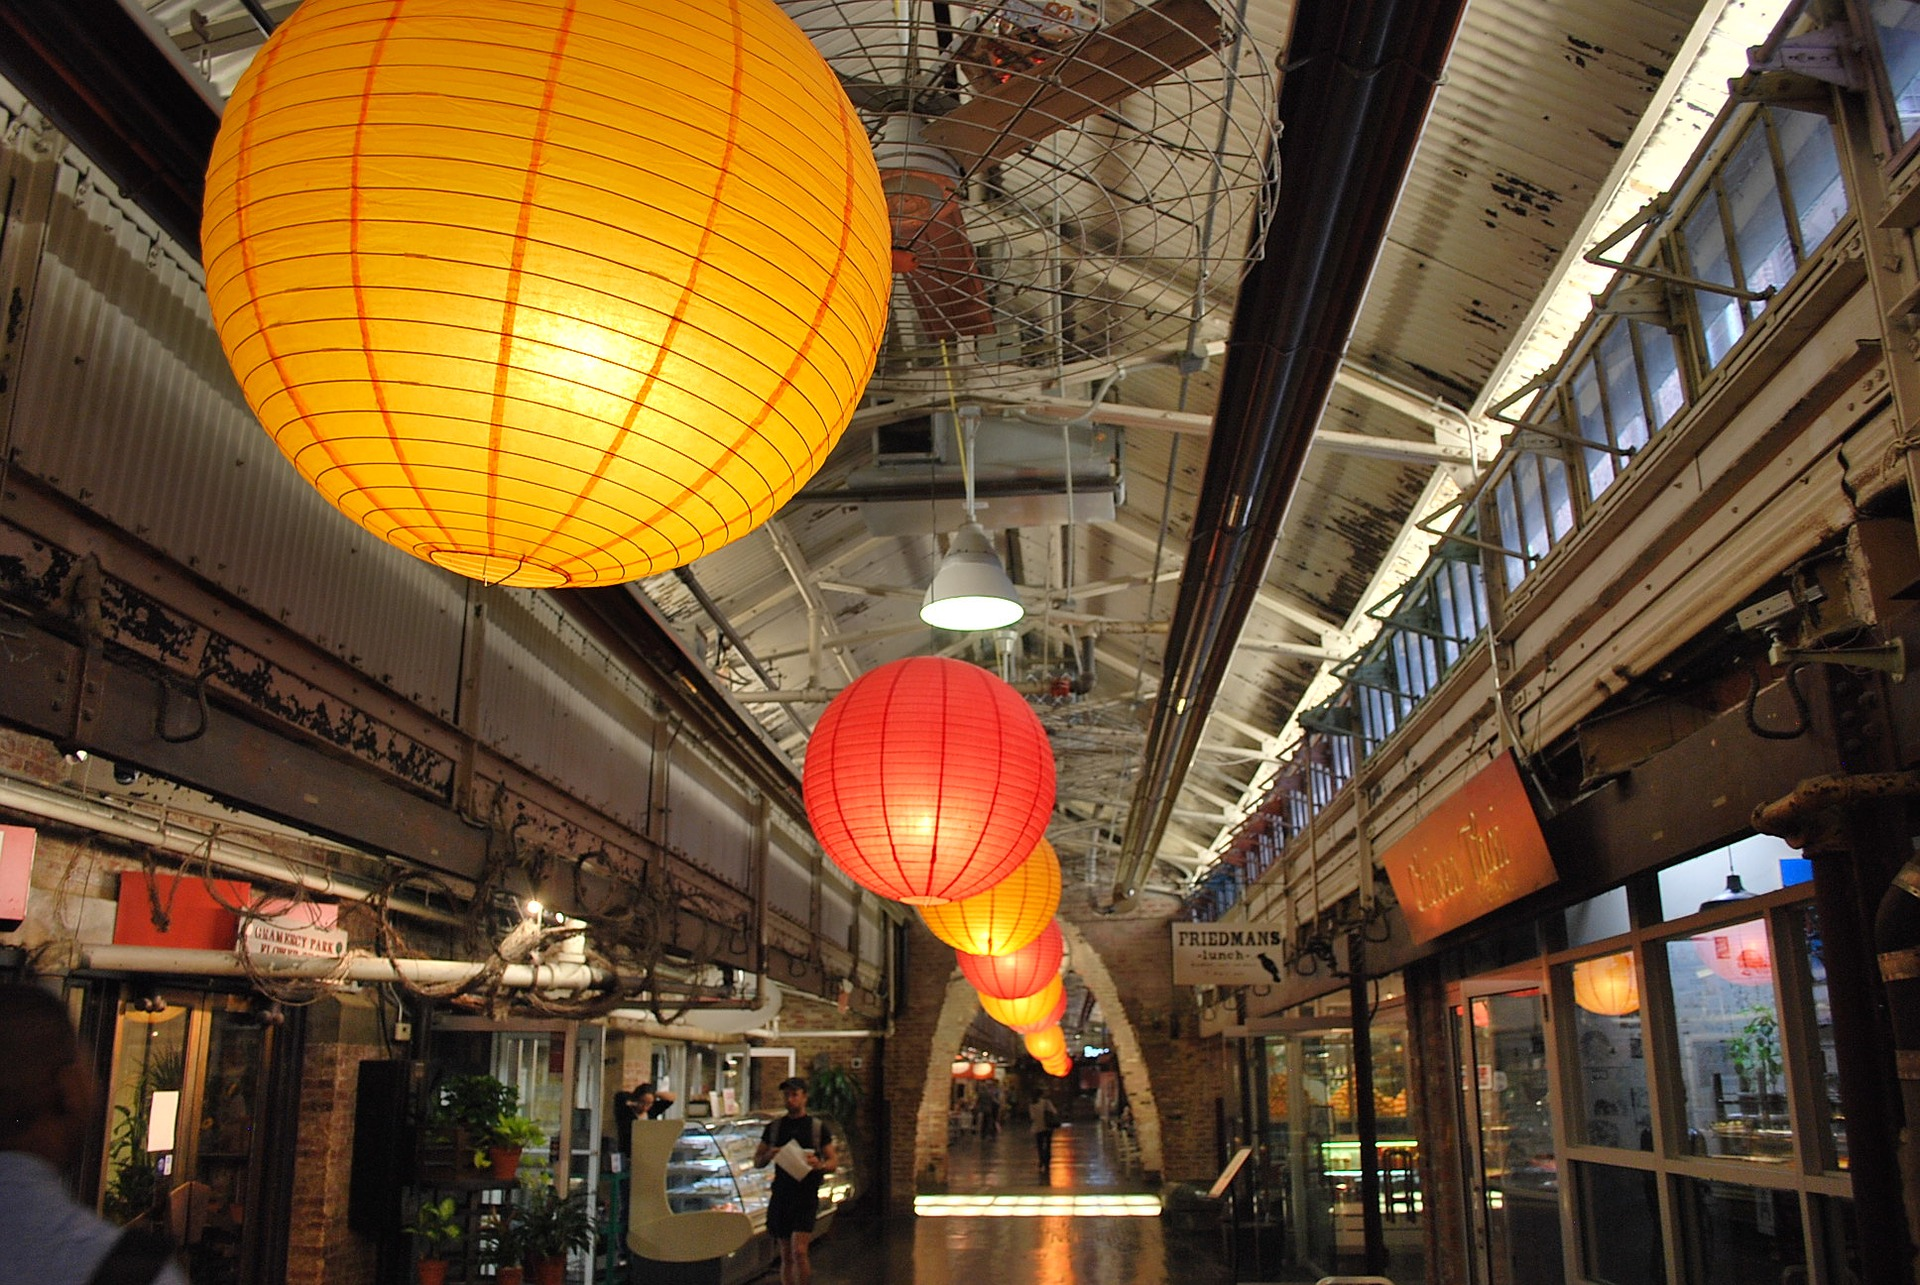 Lanteerns light up the chelsea market in New York City as customer buys food in background